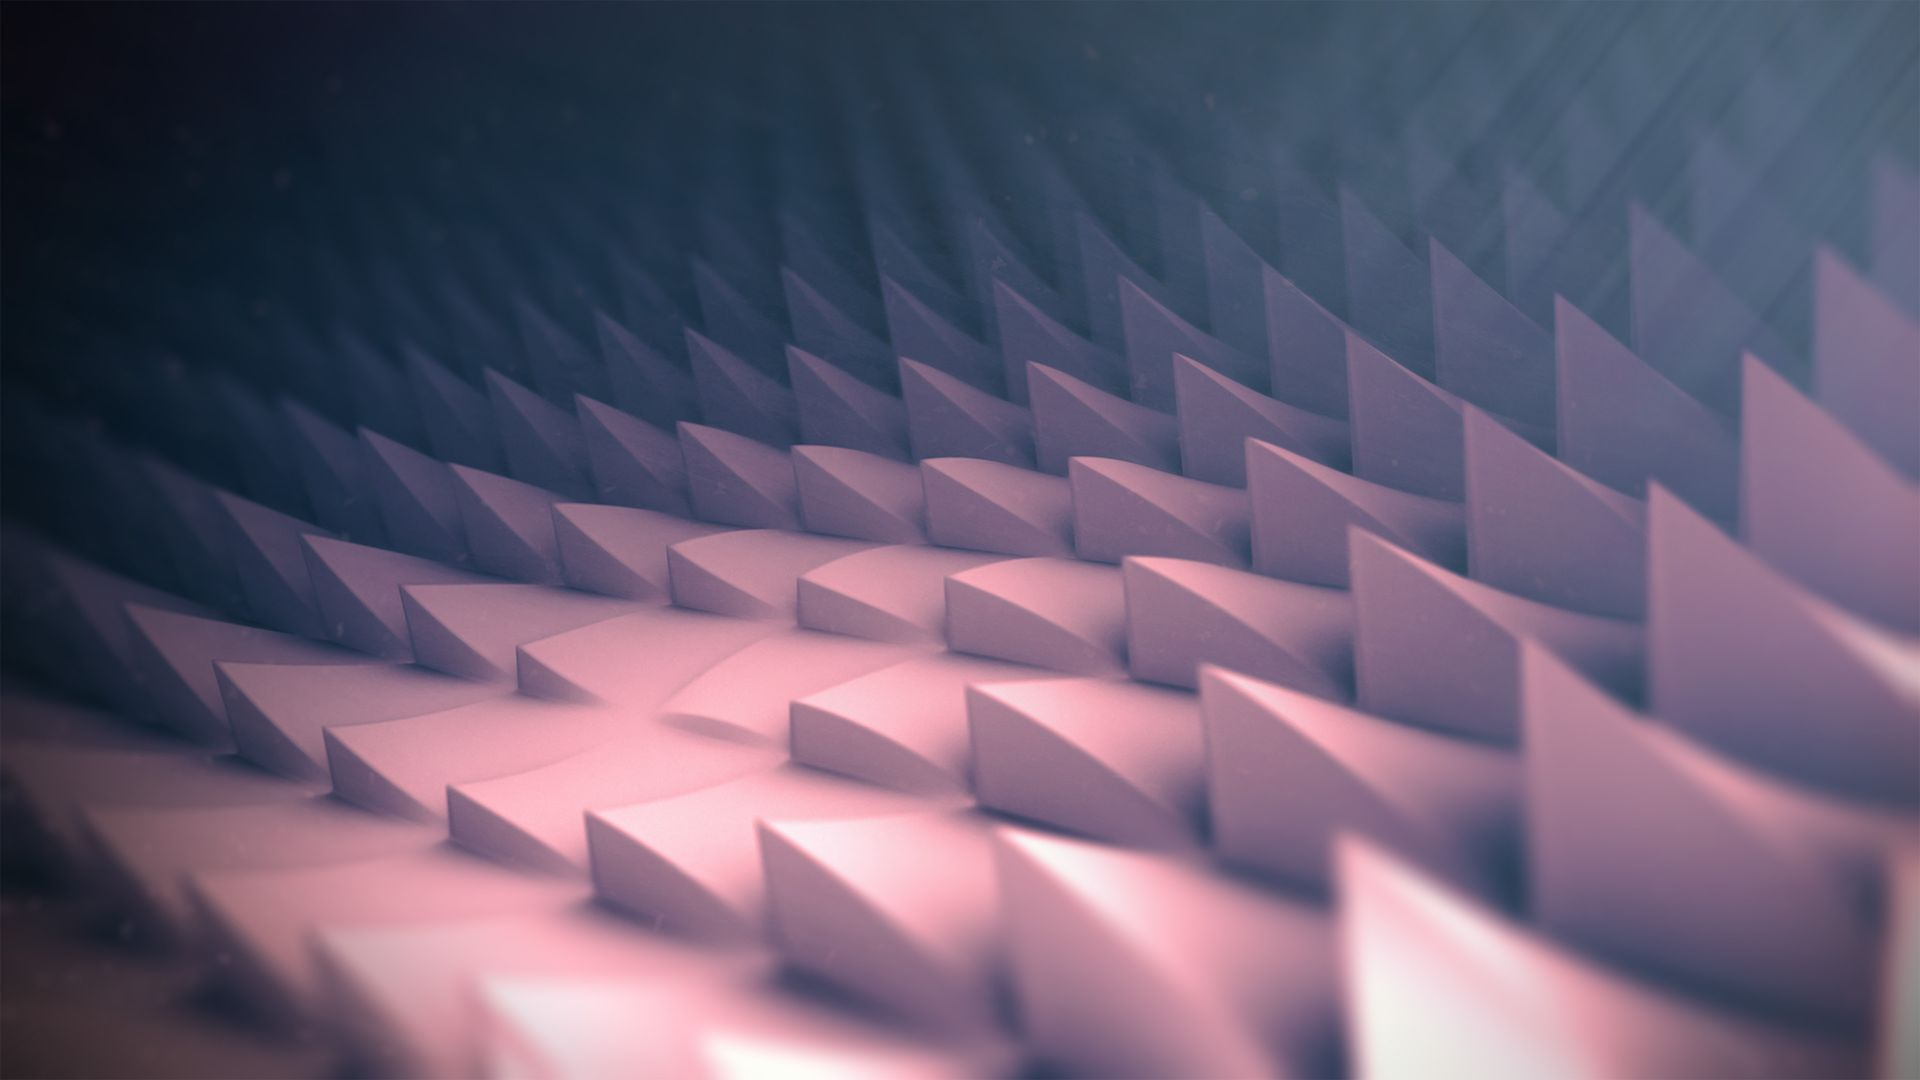 polygons, 3D, 4k, 5k, iphone wallpaper, android wallpaper, abstract, corners, low poly